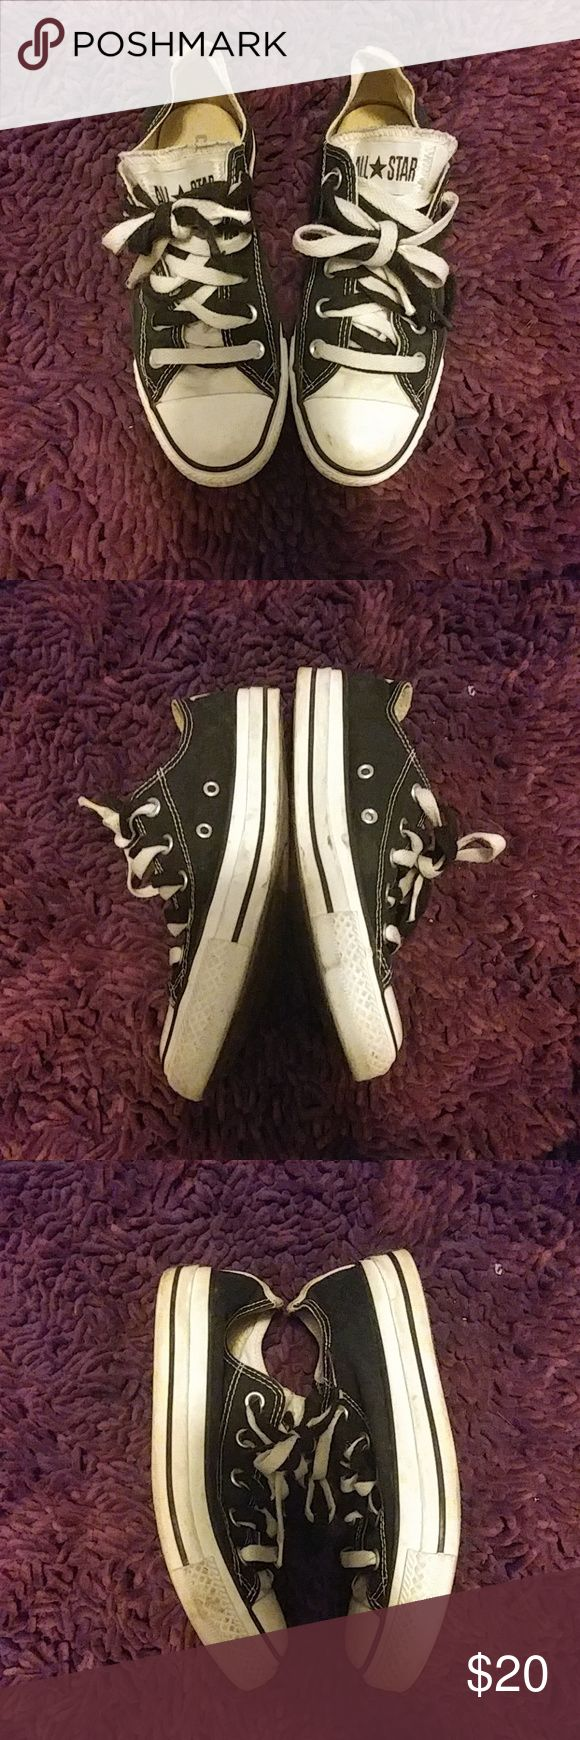 Converse shoes Classic black and white converse shoes Mens 4 Womens 6 Black and White laces. Not much wear, worn a few times Converse Shoes Sneakers